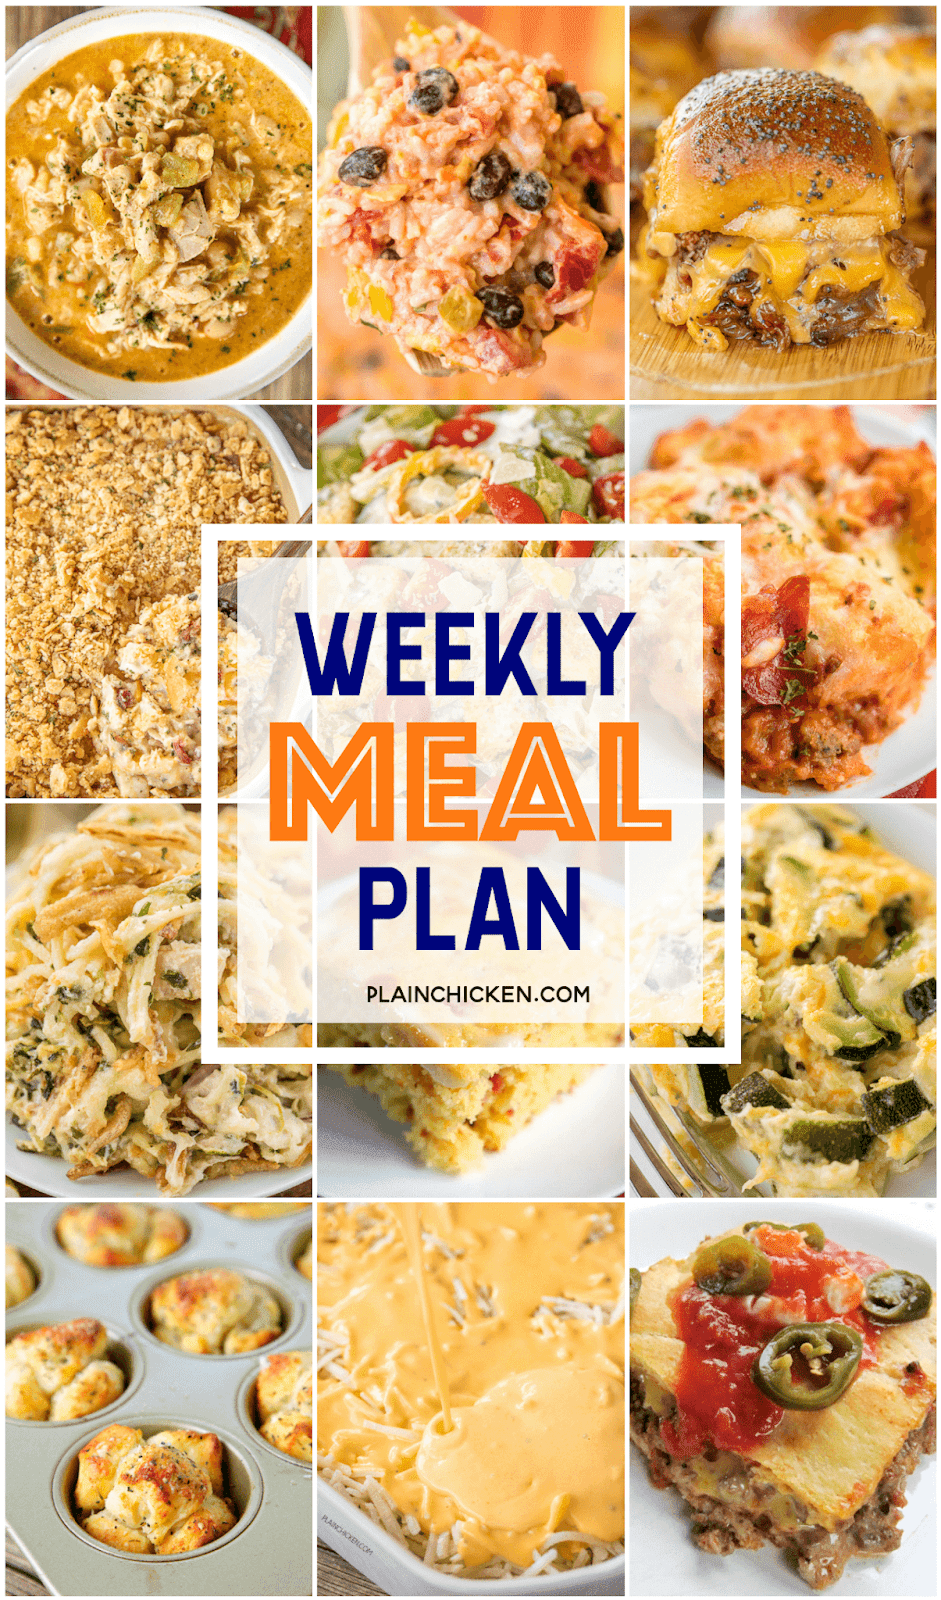 Weekly Menu food picture collage